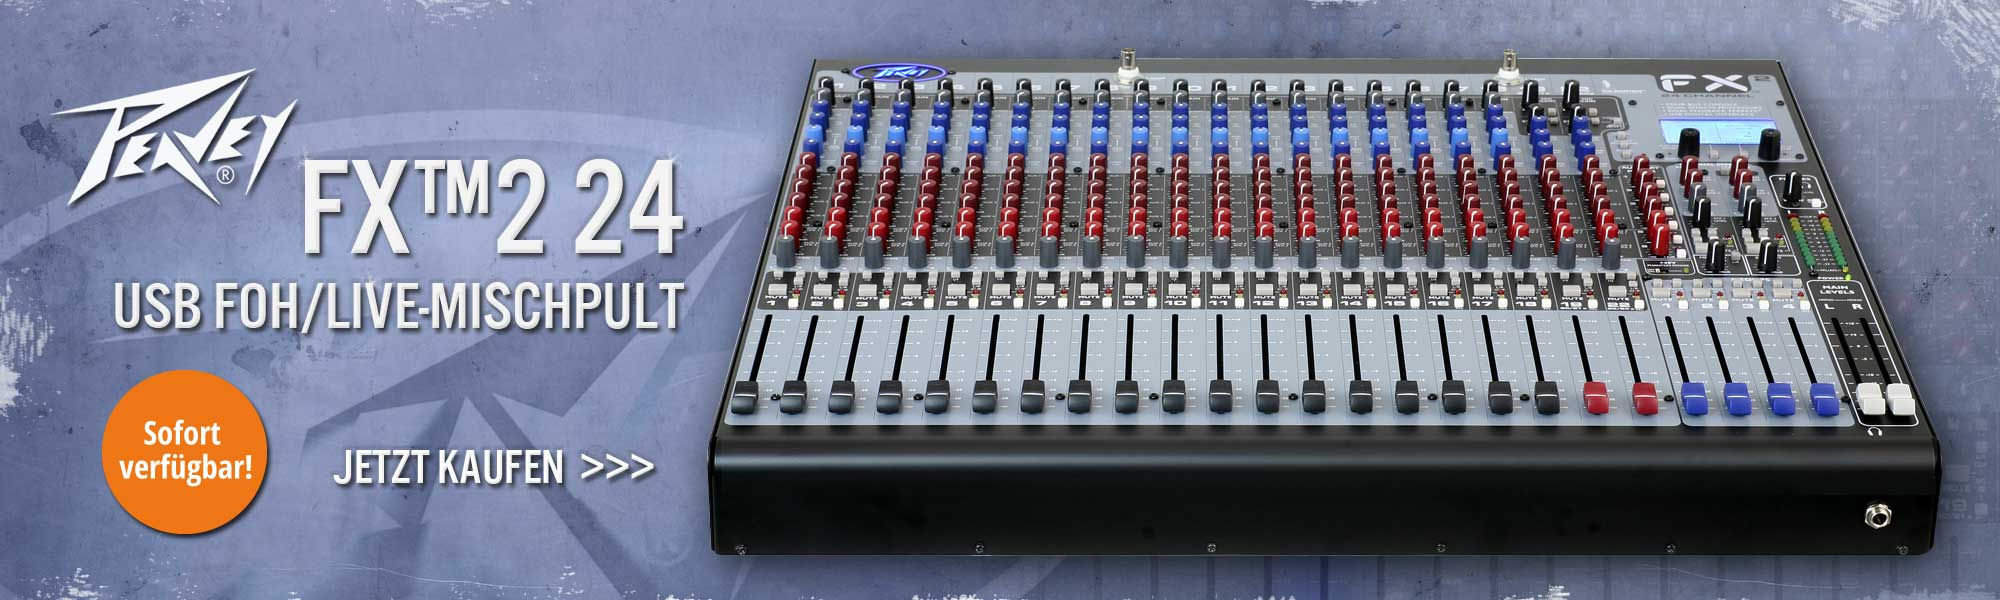 PEAVEY FX-224 USB FOH/Live-Mischpult